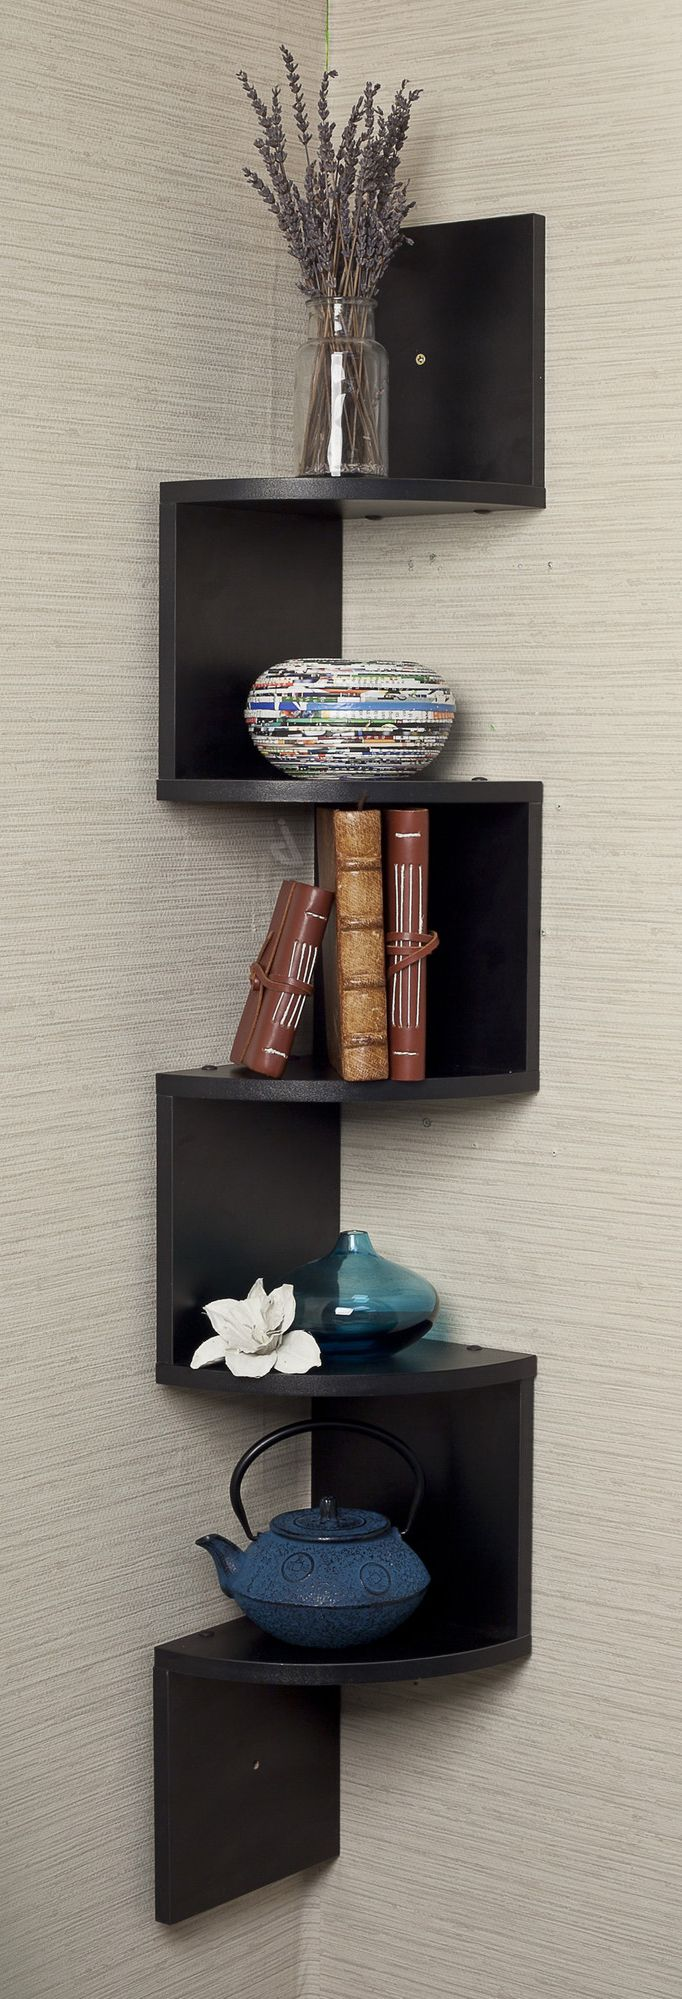 Zig zag corner wall shelf // clever design, though I wouldn't round the corner and I can build this myself /)